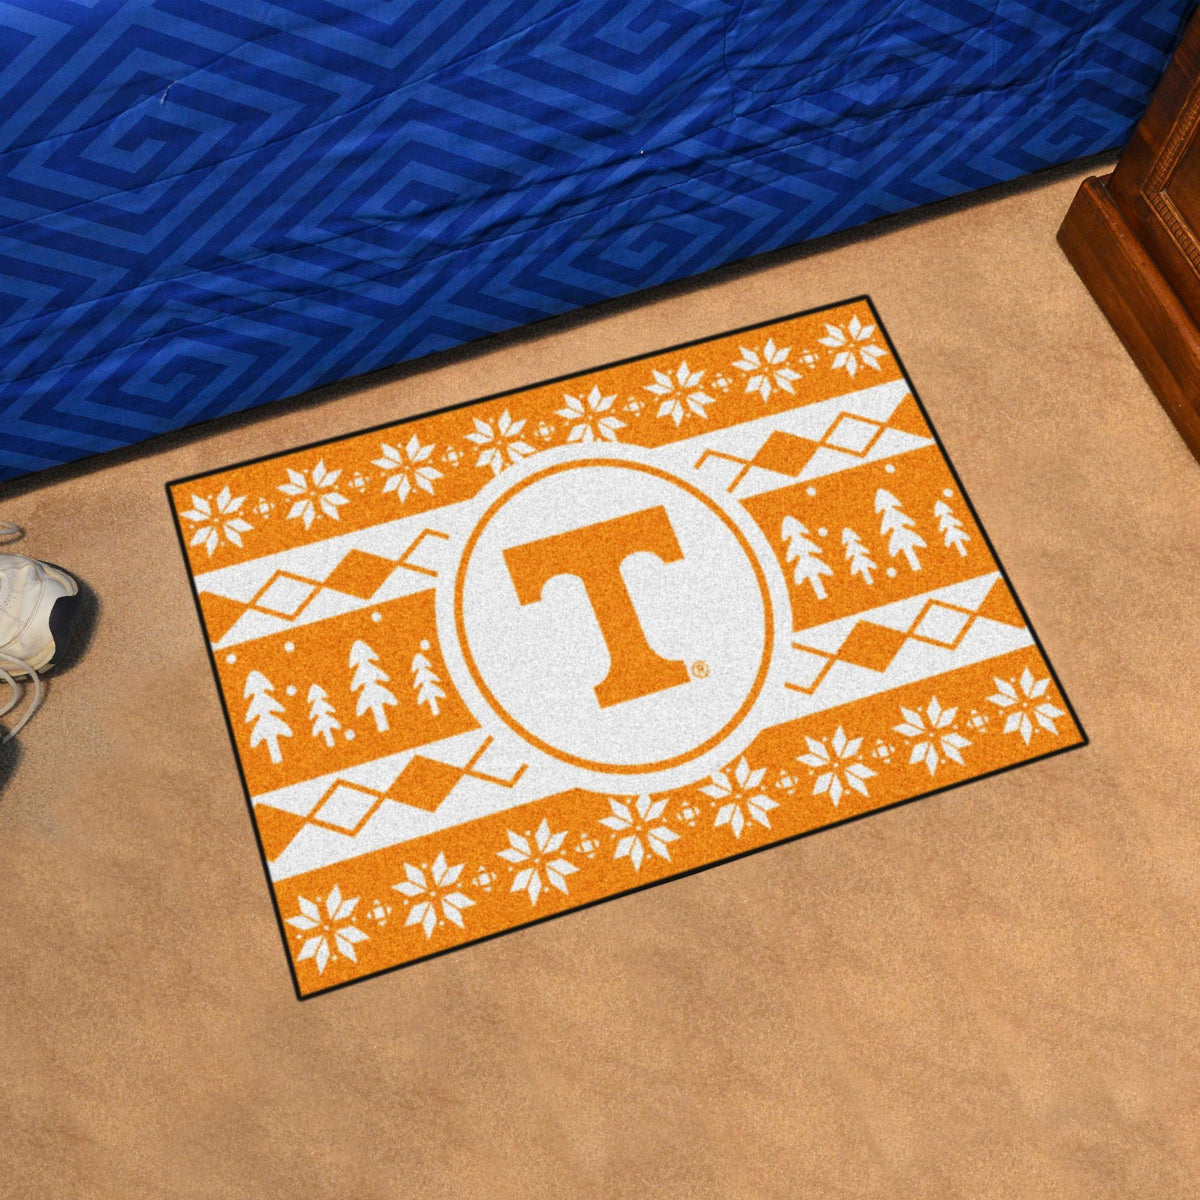 Collegiate - Holiday Sweater Starter Mat Collegiate Mats, Rectangular Mats, Holiday Sweater Starter Mat, Collegiate, Home Fan Mats Tennessee